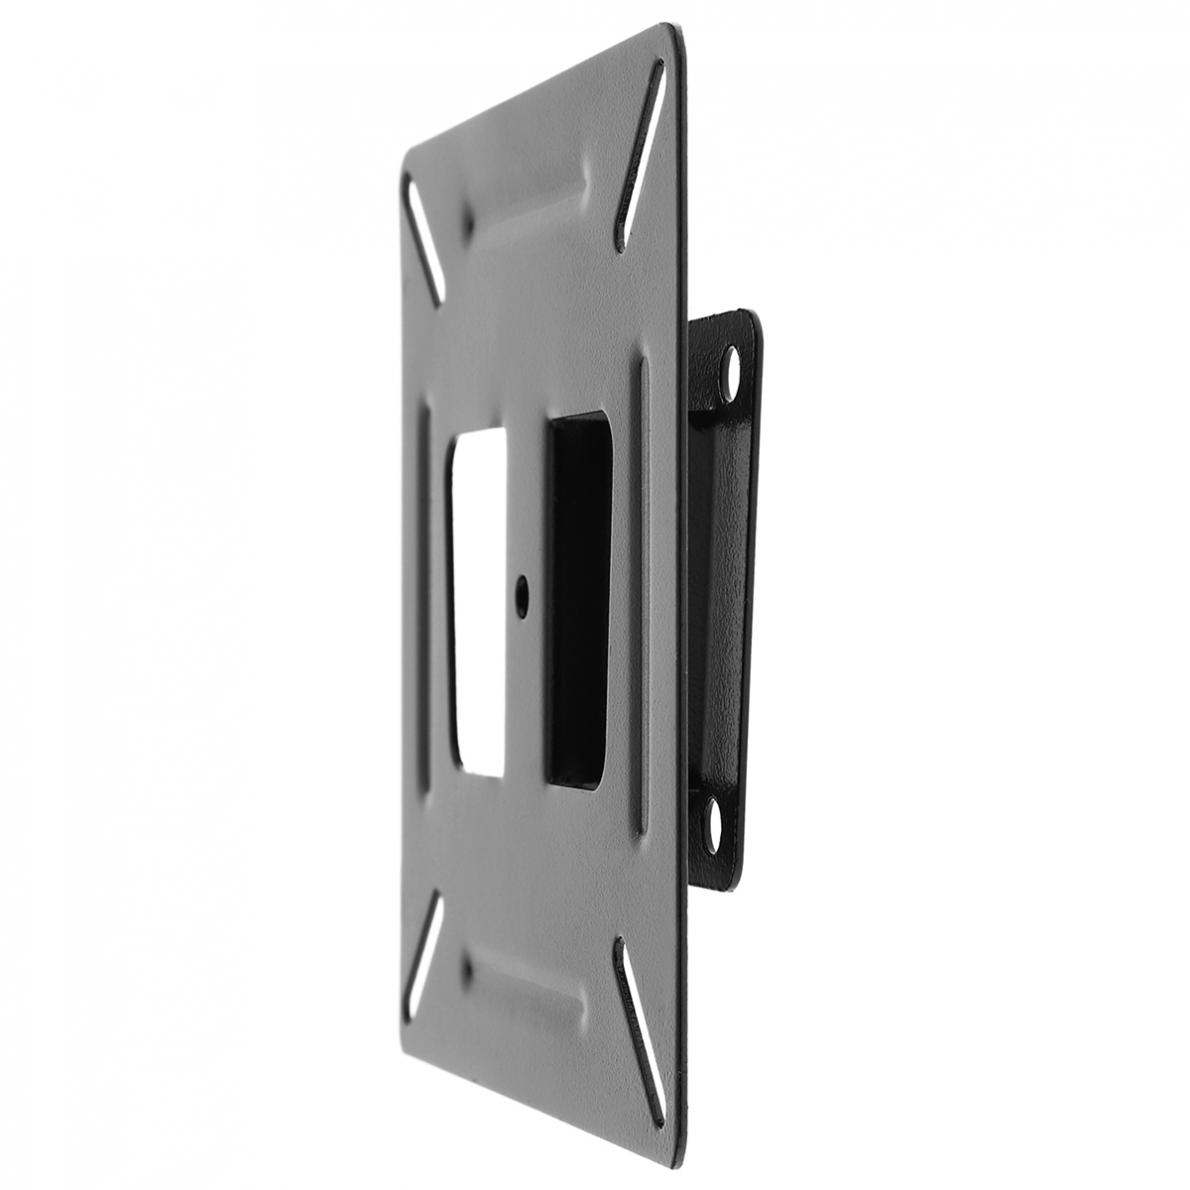 Universal Black Tv Wall Mount Bracket For 14 24 Inch Lcd